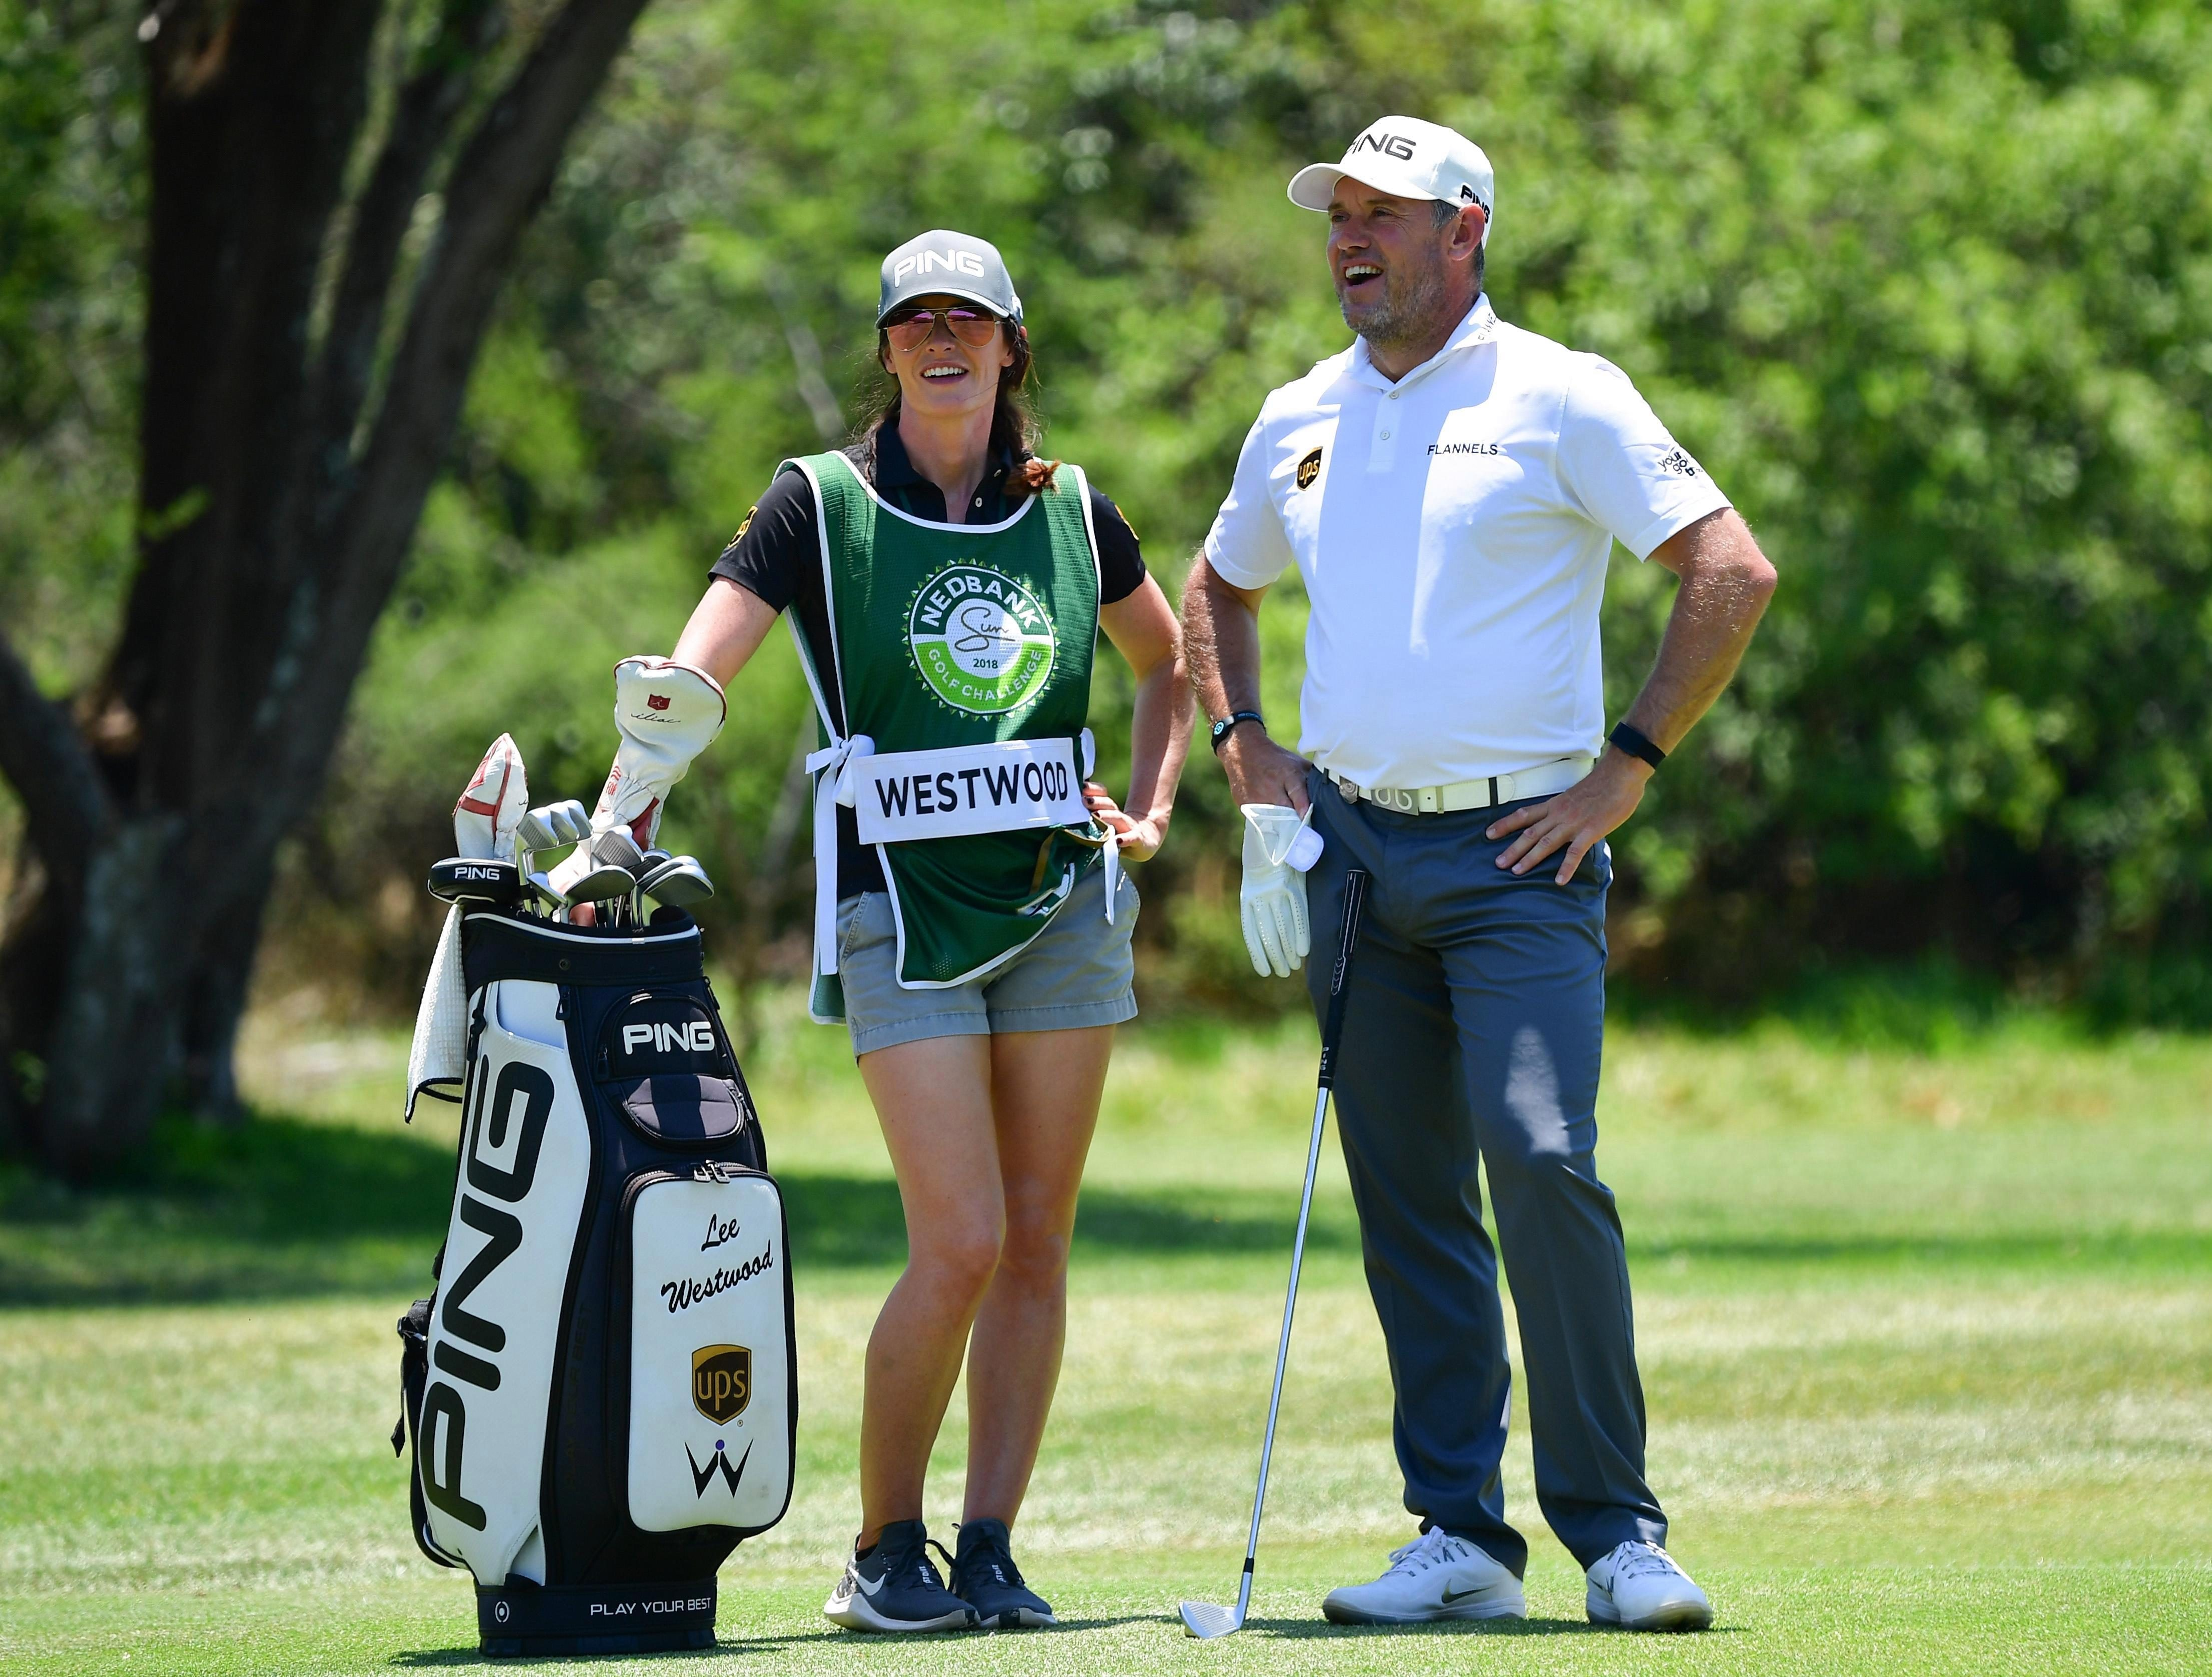 Helen Storey has been a regular caddy for Lee Westwood in recent competitions